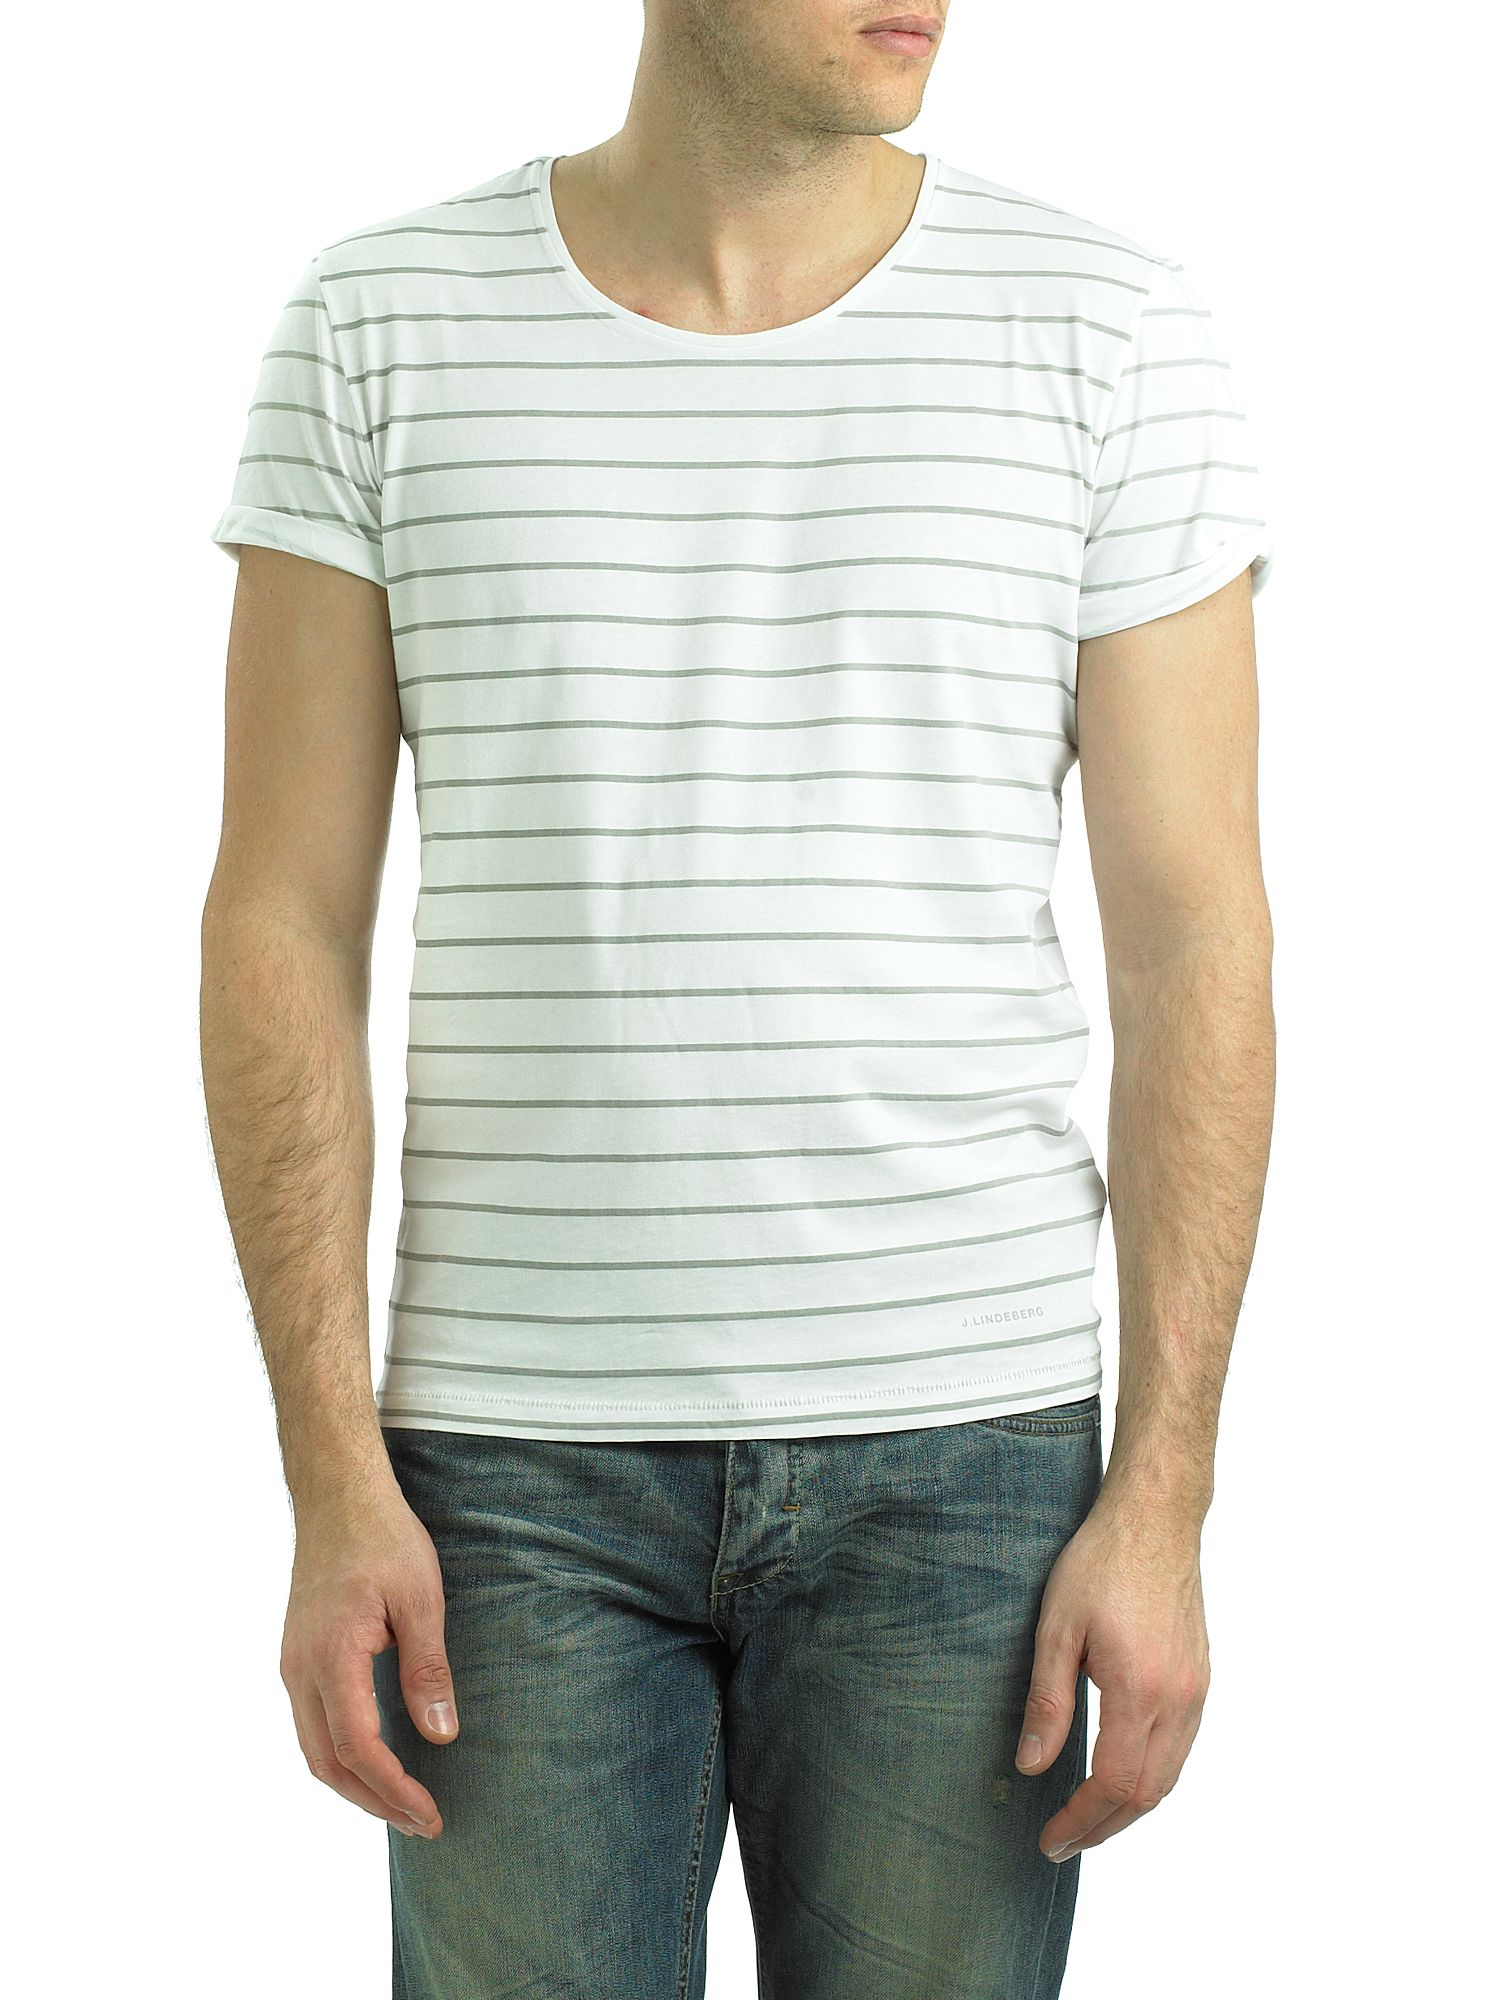 J Lindeberg Striped T-shirt White product image